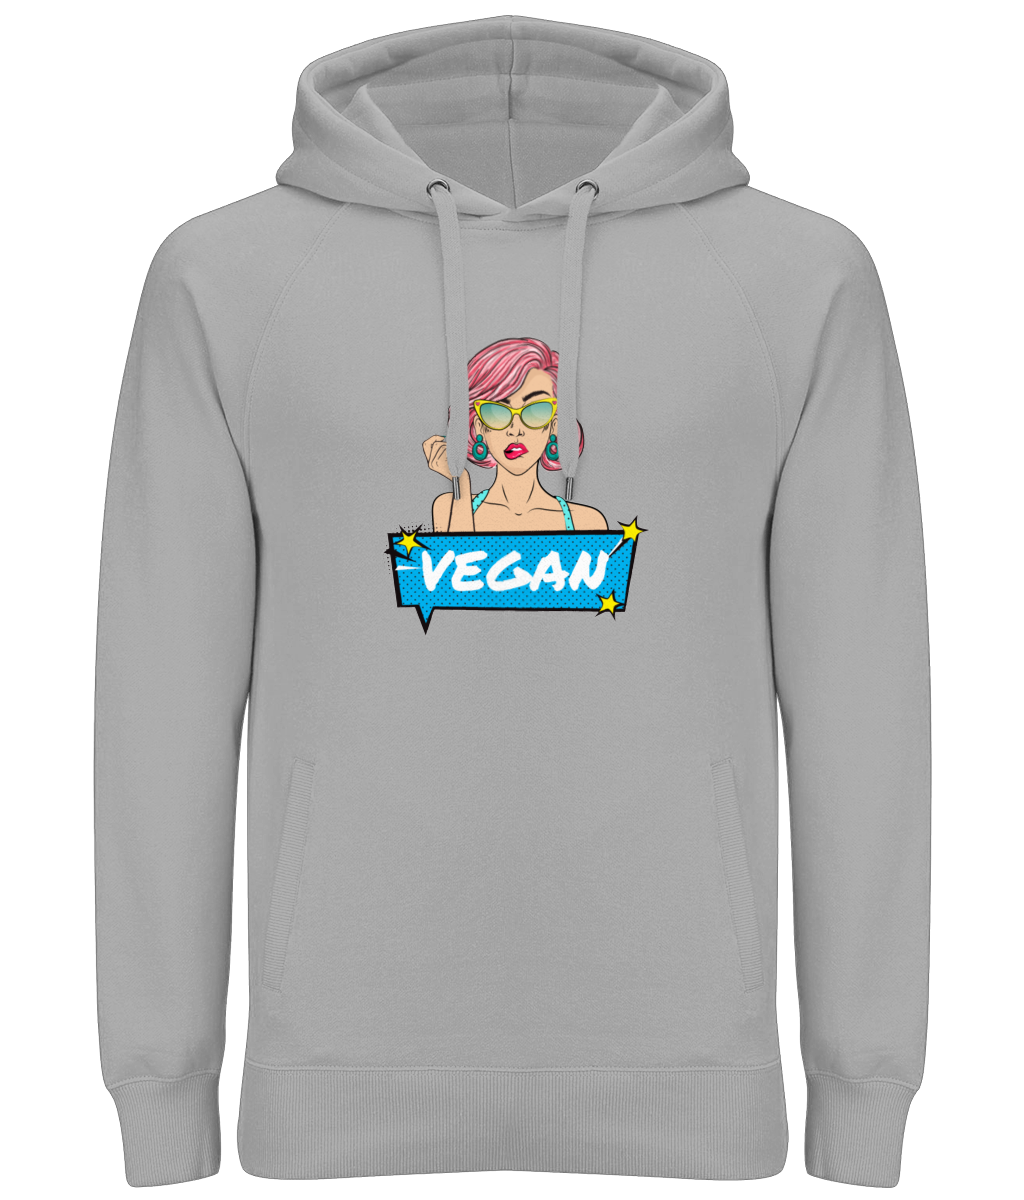 Pop Art Vegan // Unisex Hoody